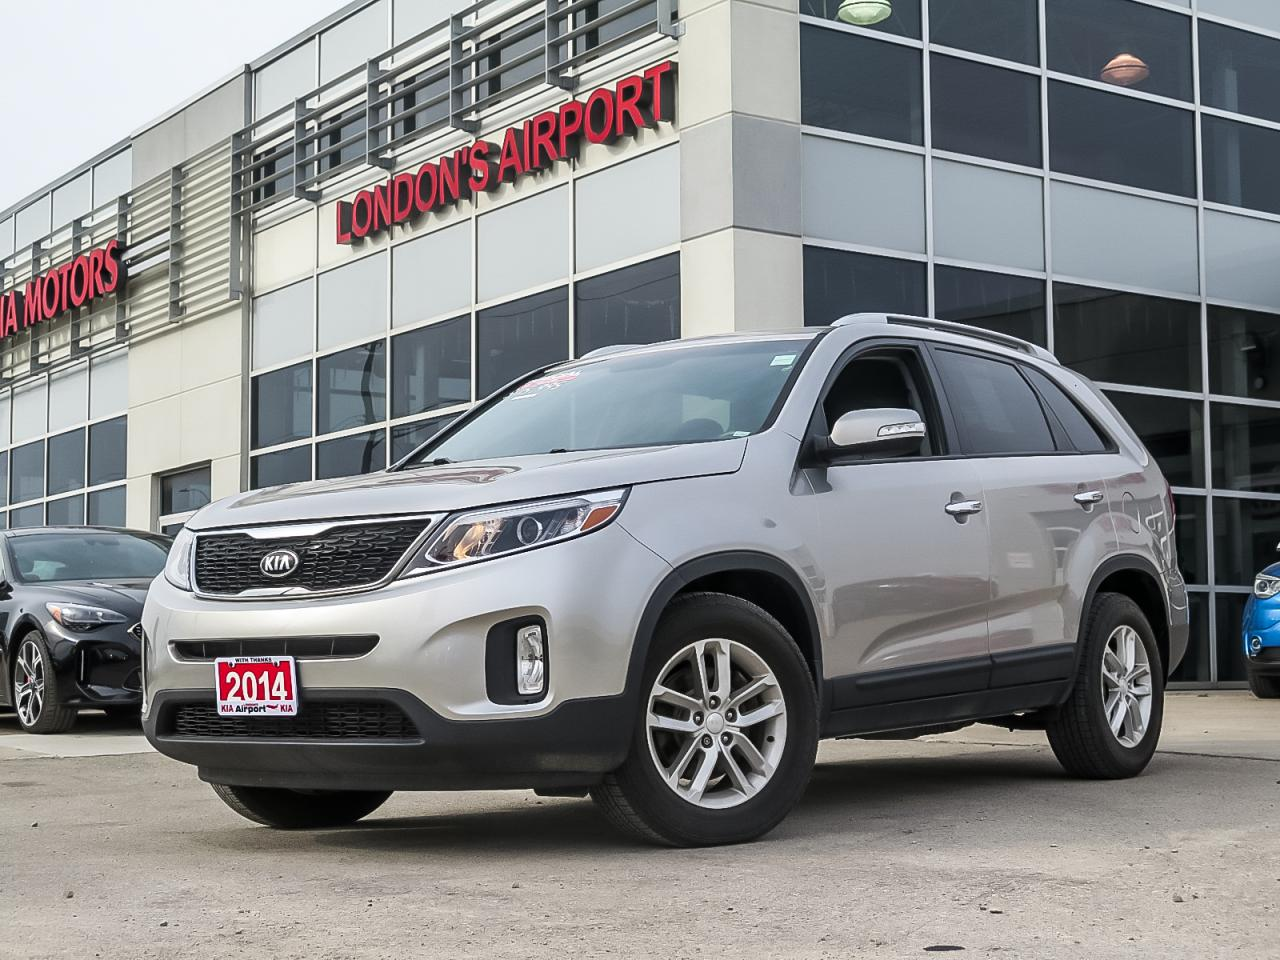 Airport Kia London >> Used 2014 Kia Sorento Lx For Sale In London Ontario